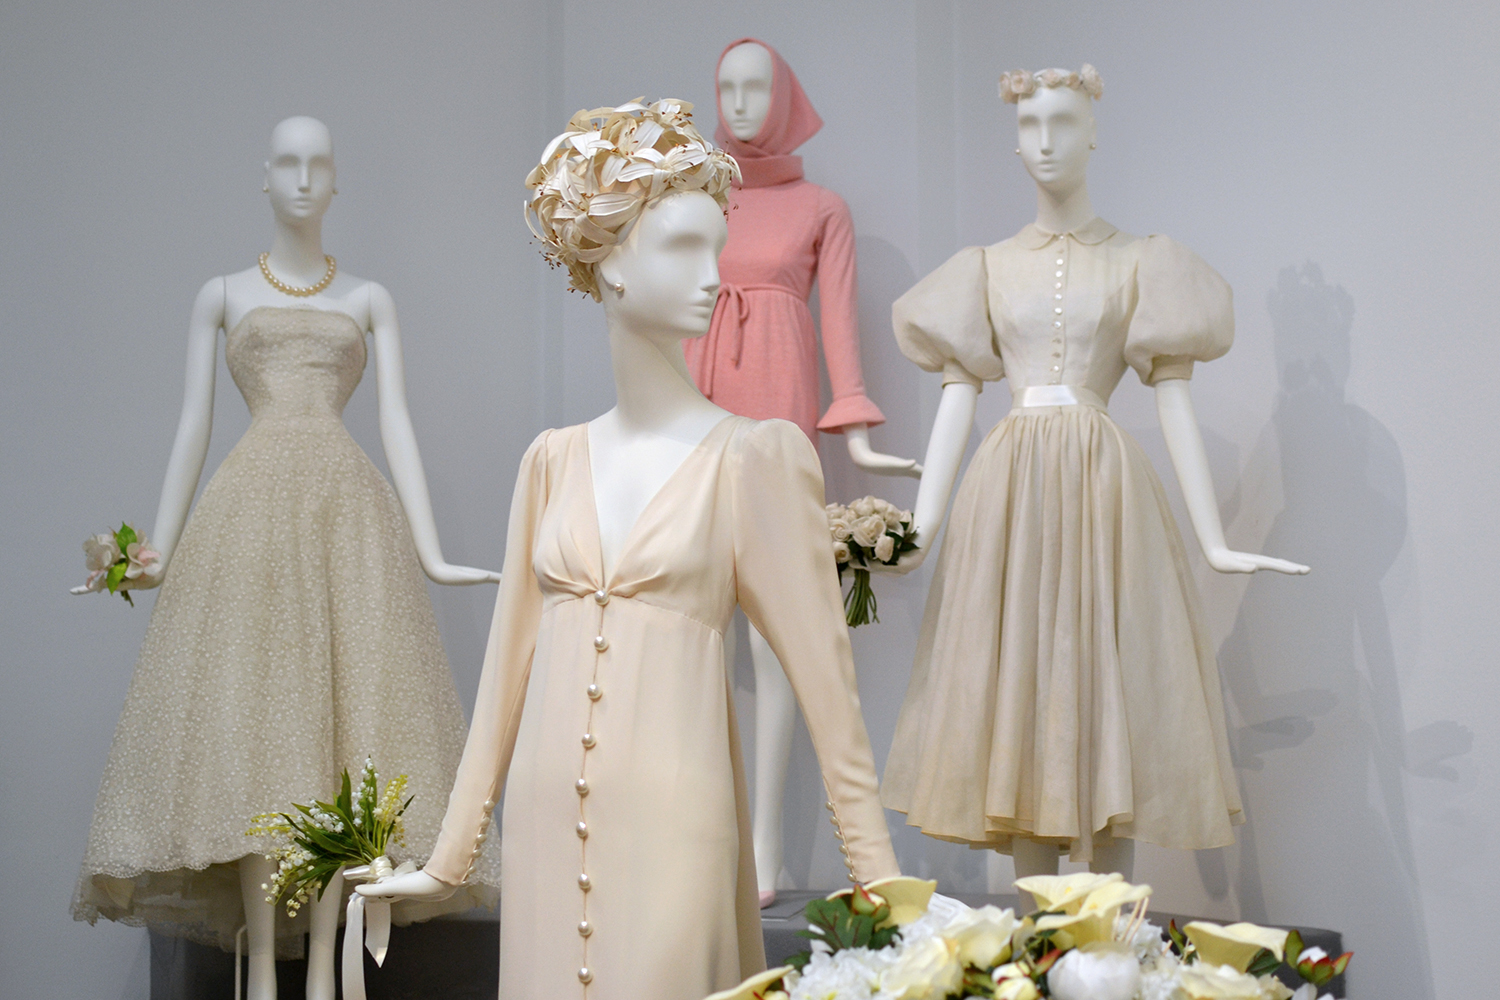 Retromantisch Gemeentemuseum Den Haag Hubert de Givenchy To Audrey with love 4